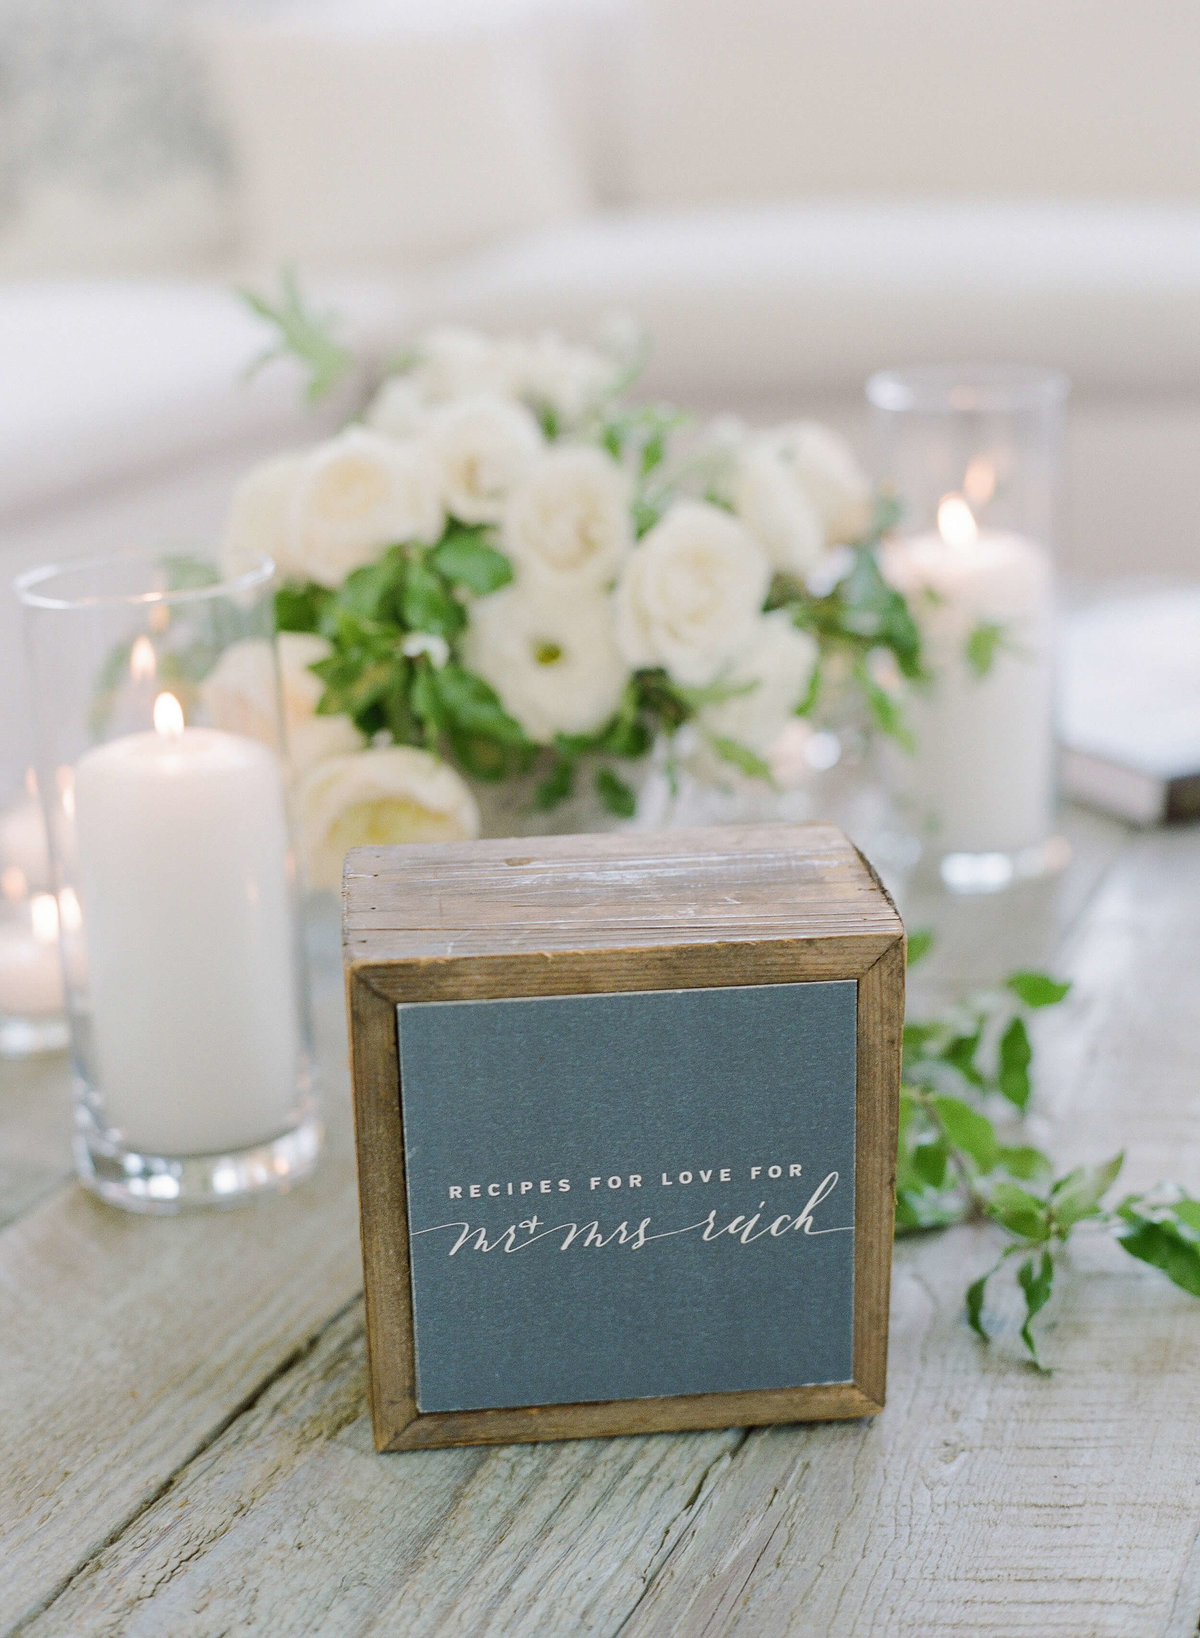 28-KTMerry-photography-Lea-Michele-celebrity-wedding-favors